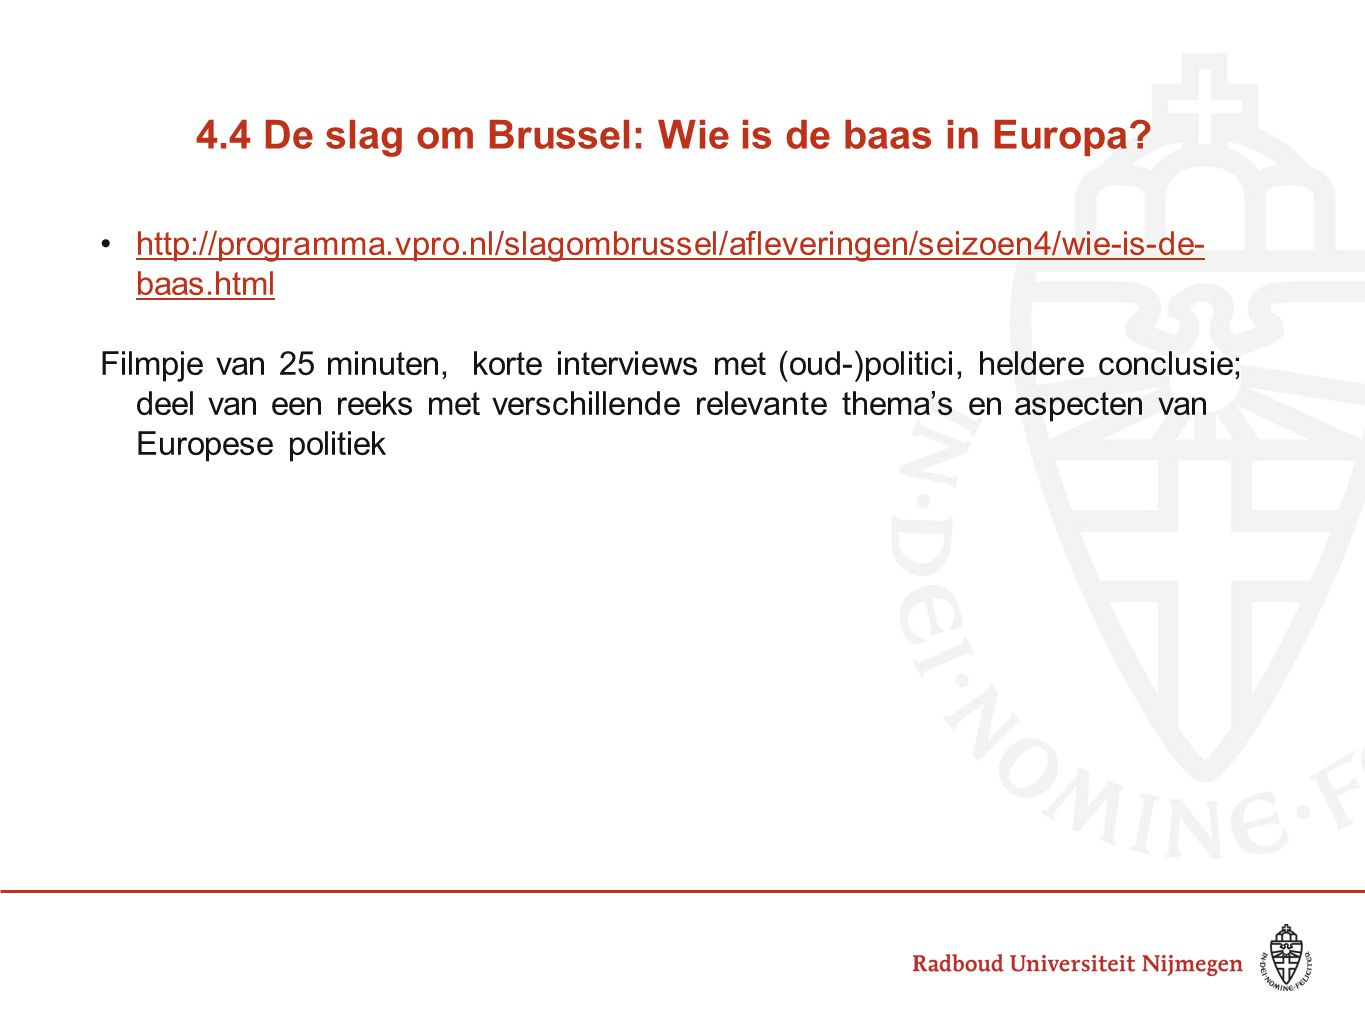 4.4 De slag om Brussel: Wie is de baas in Europa